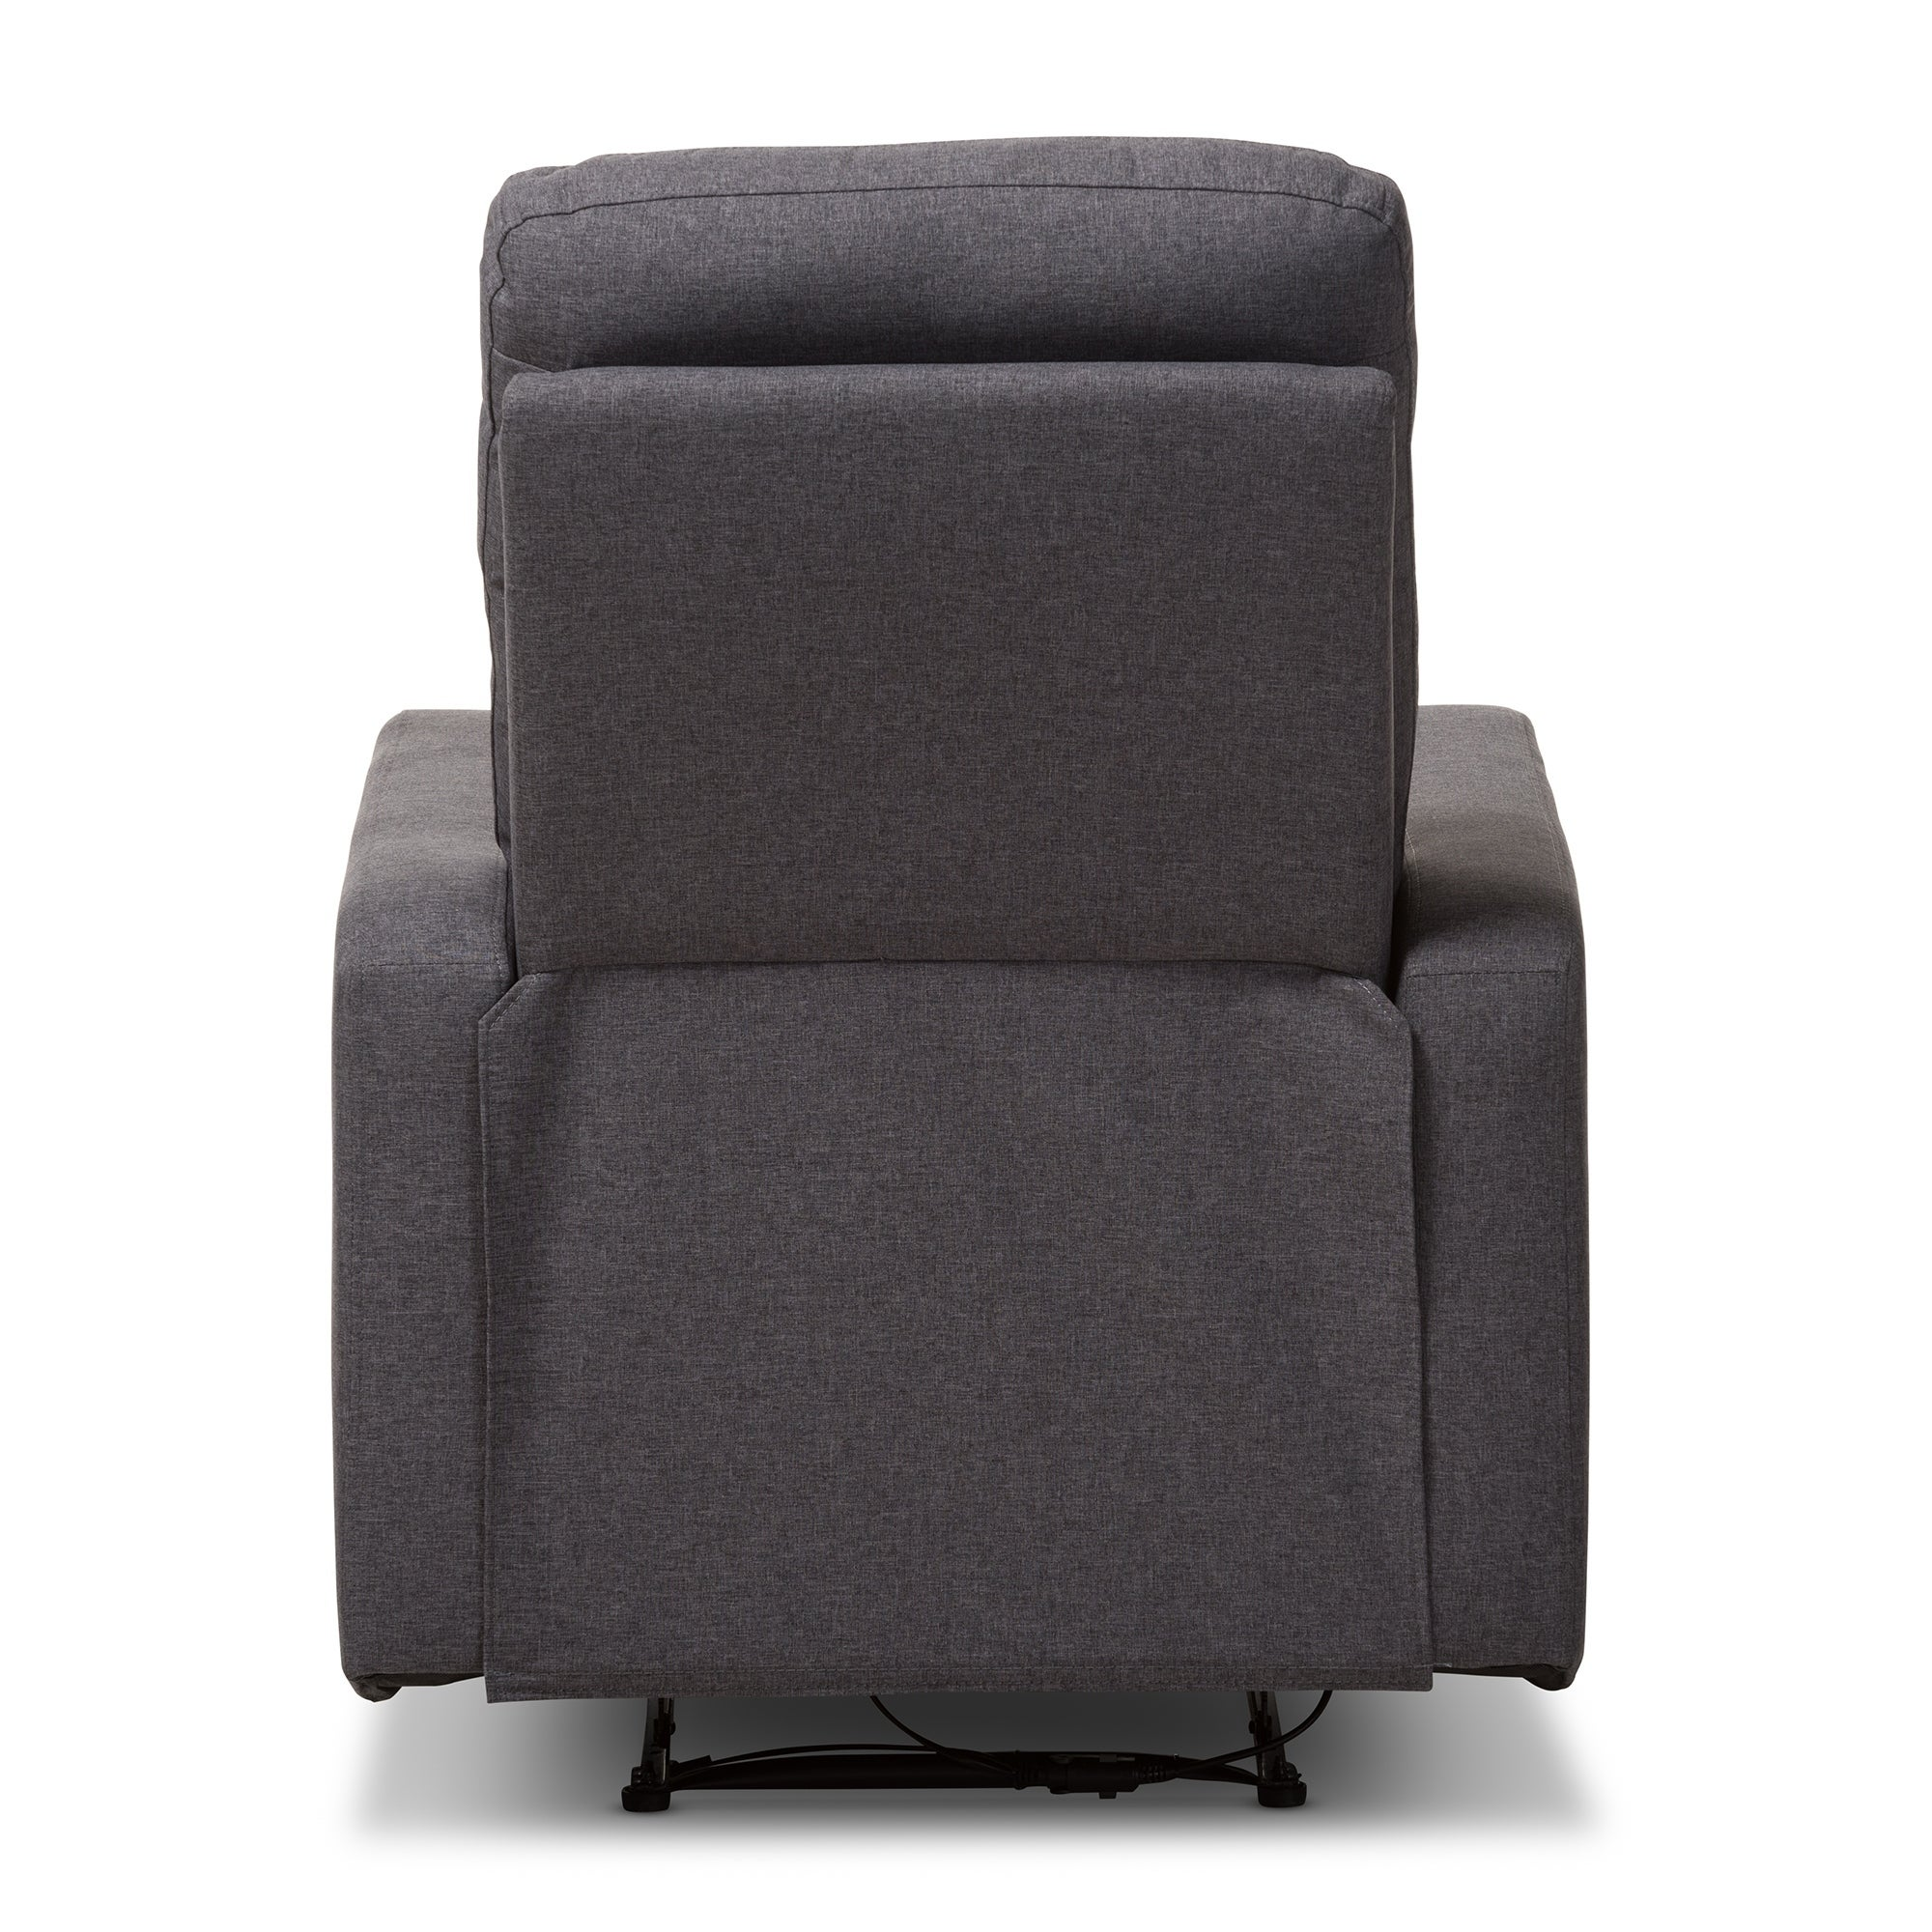 Contemporary Fabric Power Recliner Armchair By Baxton Studio   Free  Shipping Today   Overstock   23641413